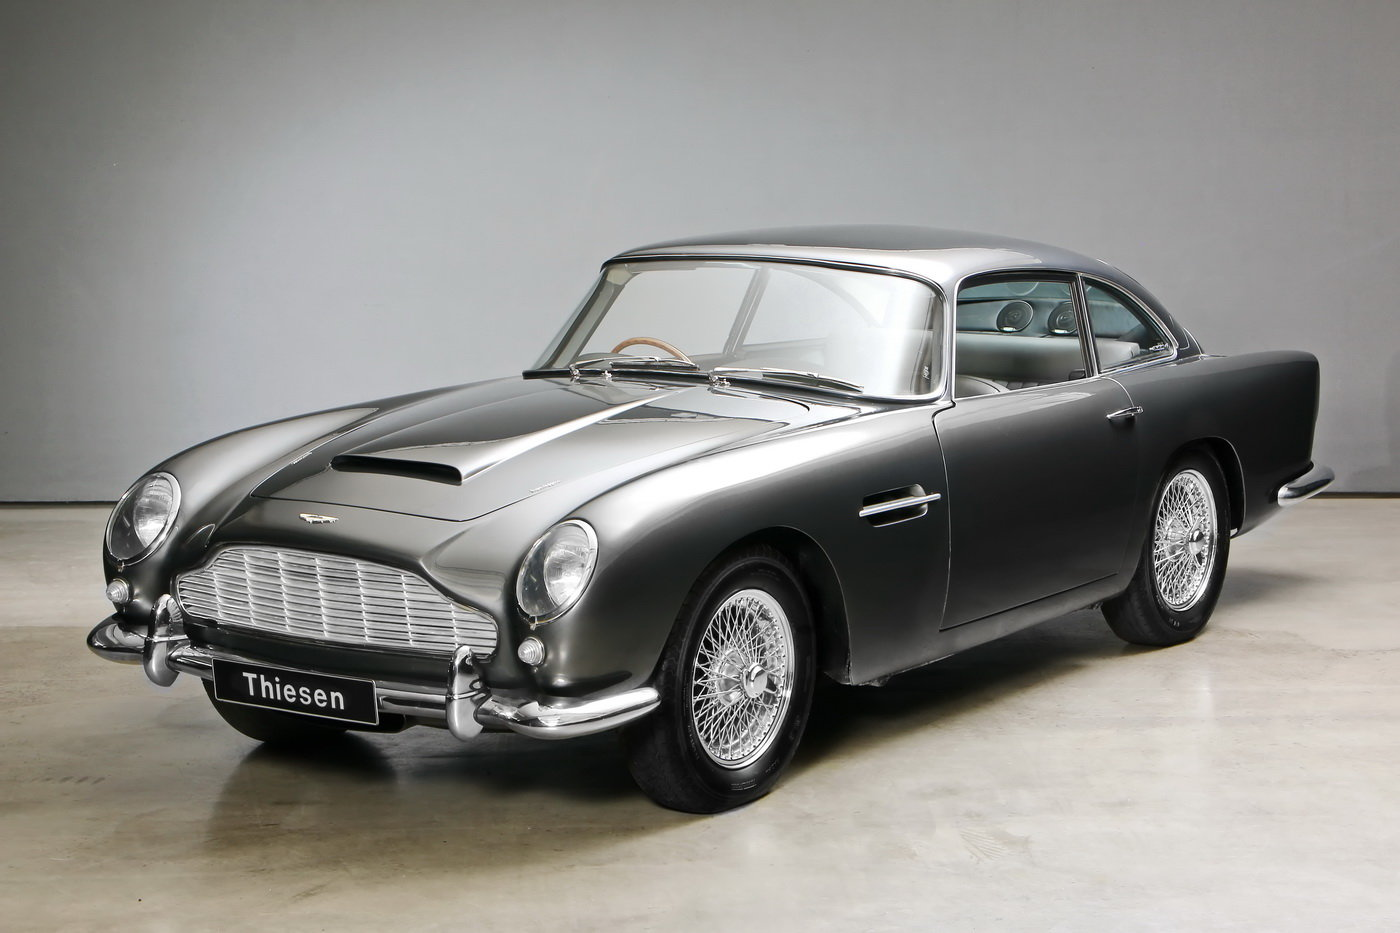 1963 DB 4 Serie V Vantage For Sale (picture 1 of 12)